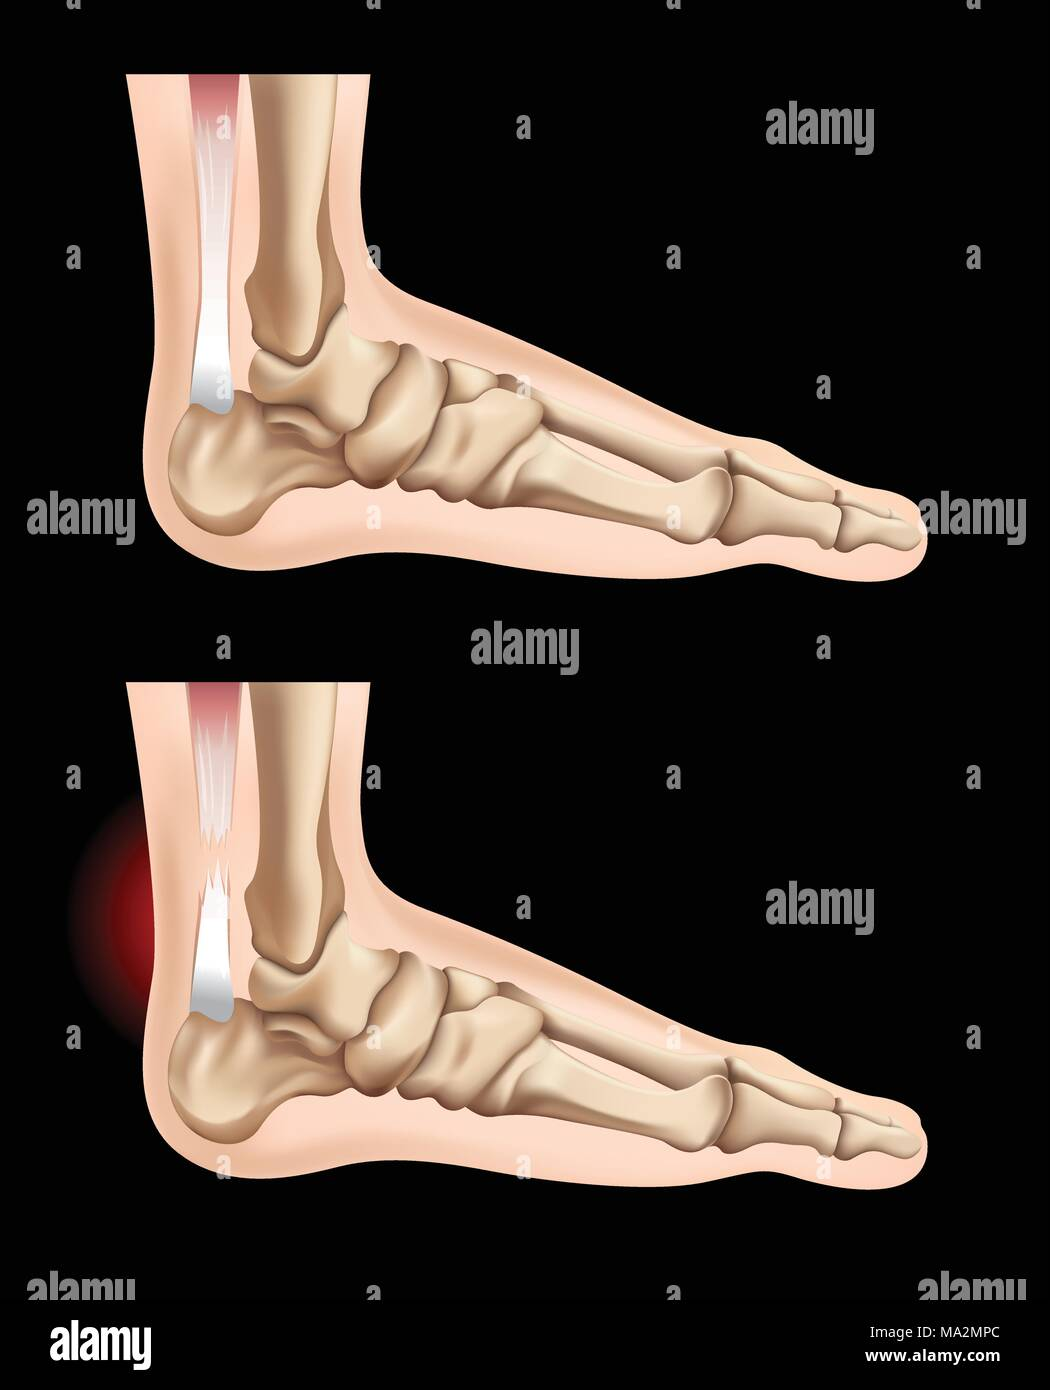 Human feet and injury in tendon illustration - Stock Vector